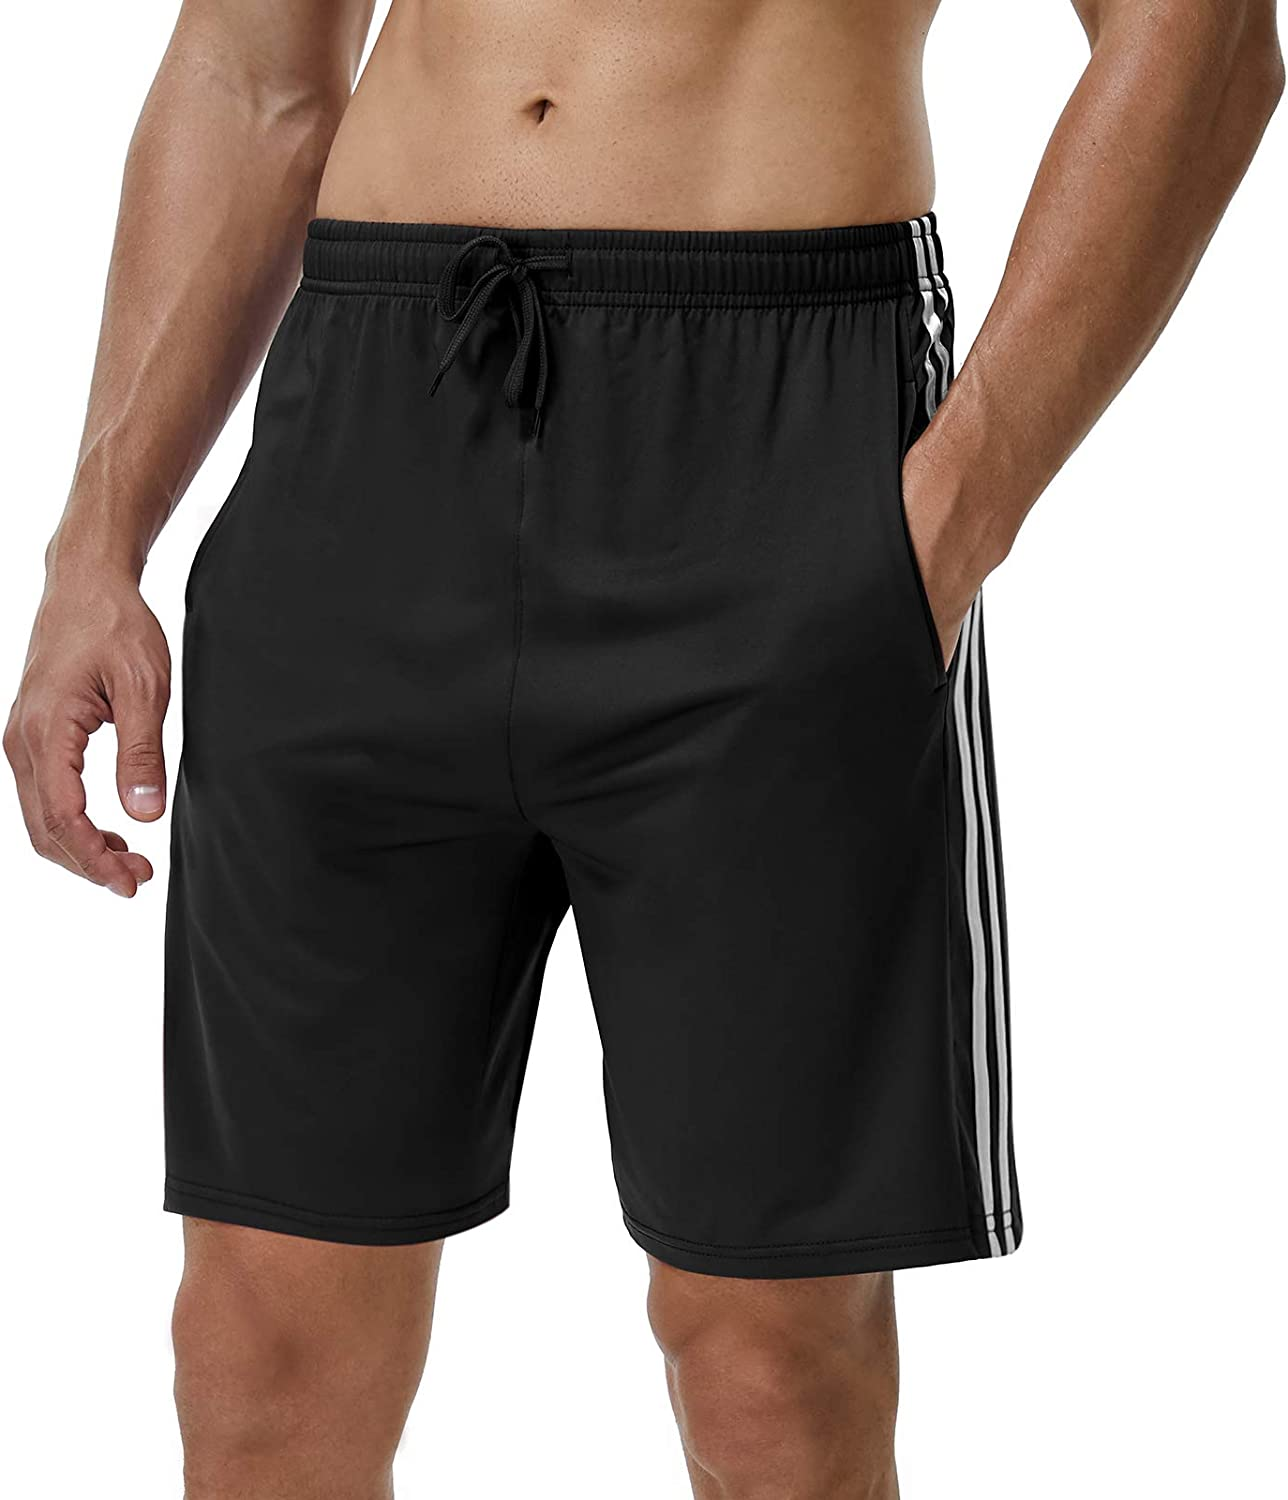 with Pockets 3 Pack Quick Dry Workout Gym Basketball Shorts YOMOVER Athletic Shorts for Men